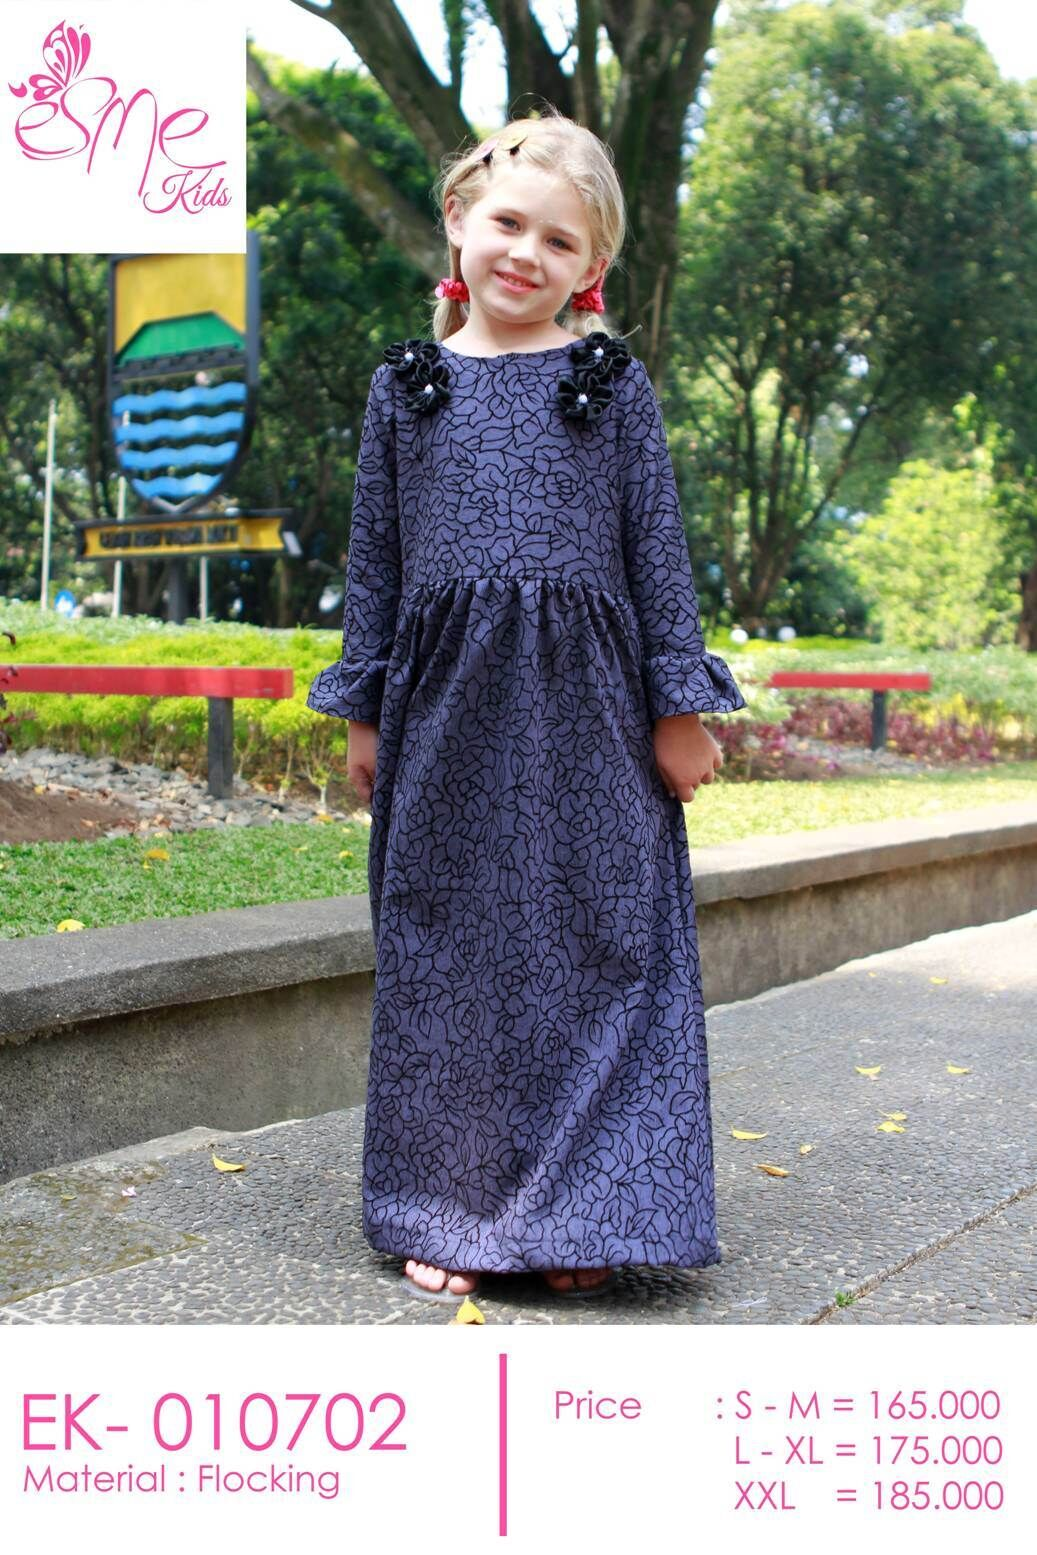 Best Of Kids Esme Collection New Arrival Baju Gamis Rok